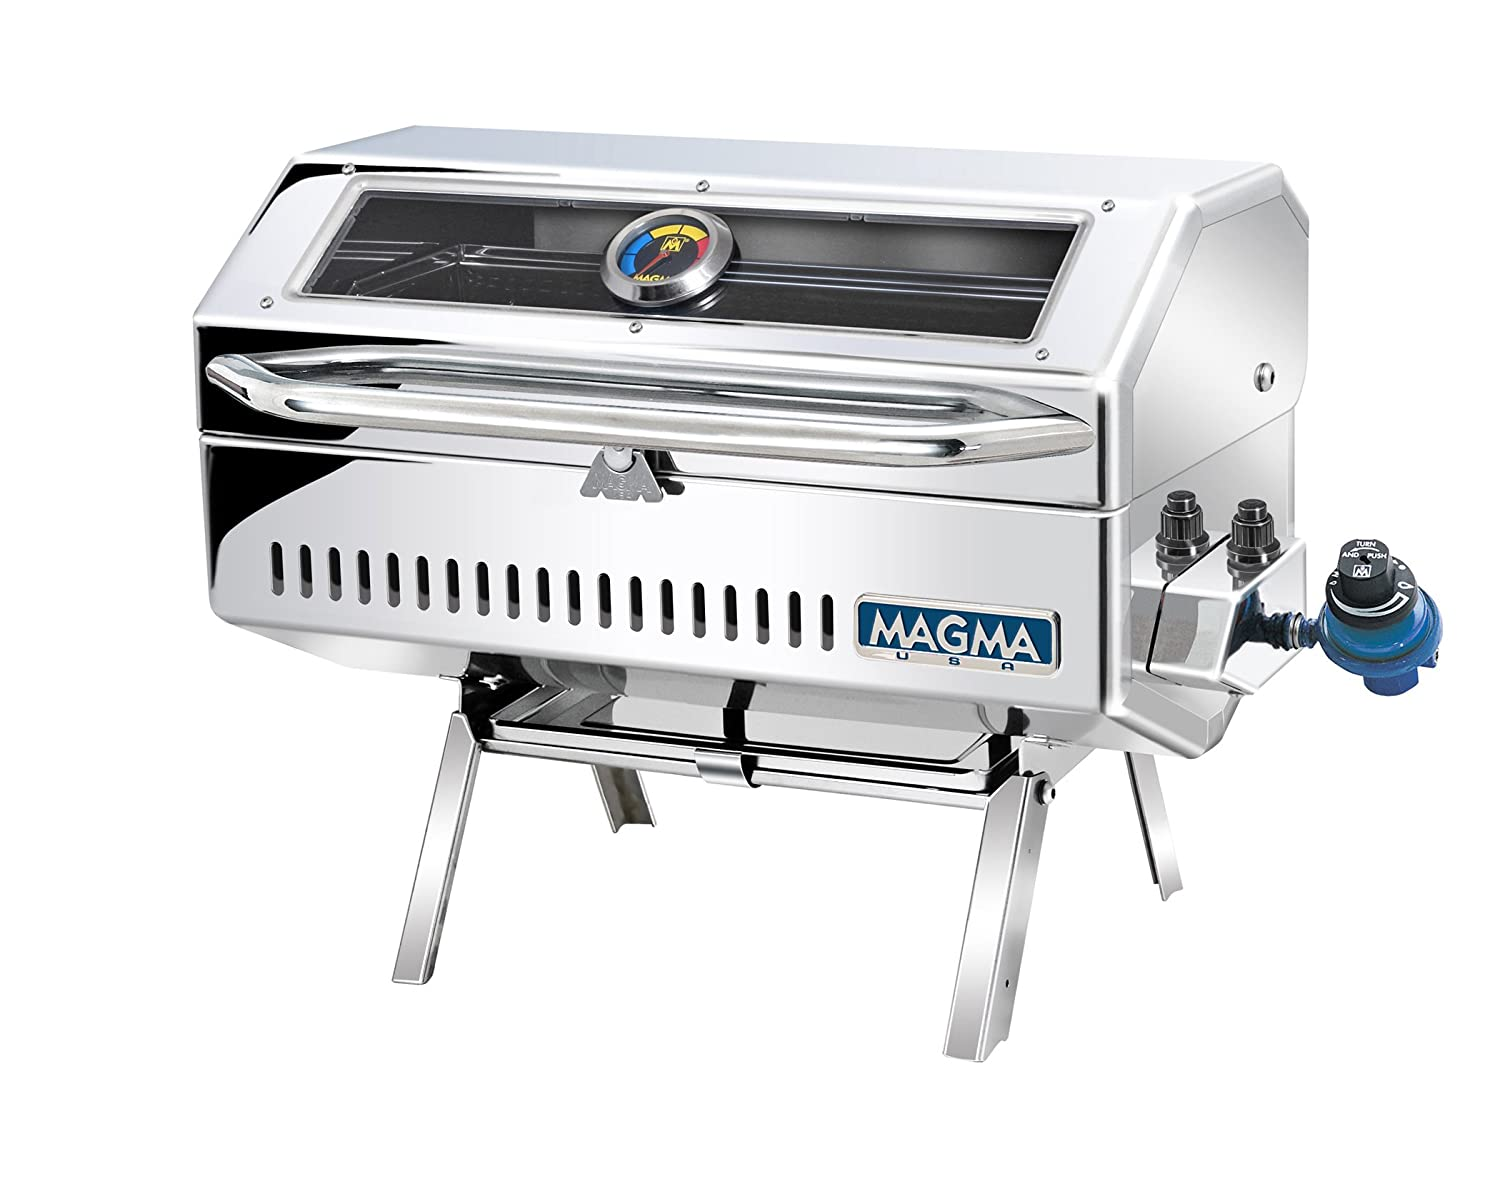 Amazon.com : Magma Newport 2 Infra Red Gas Grill The marine grill we use on our boat, it attaches to one of the fishing reel holders.